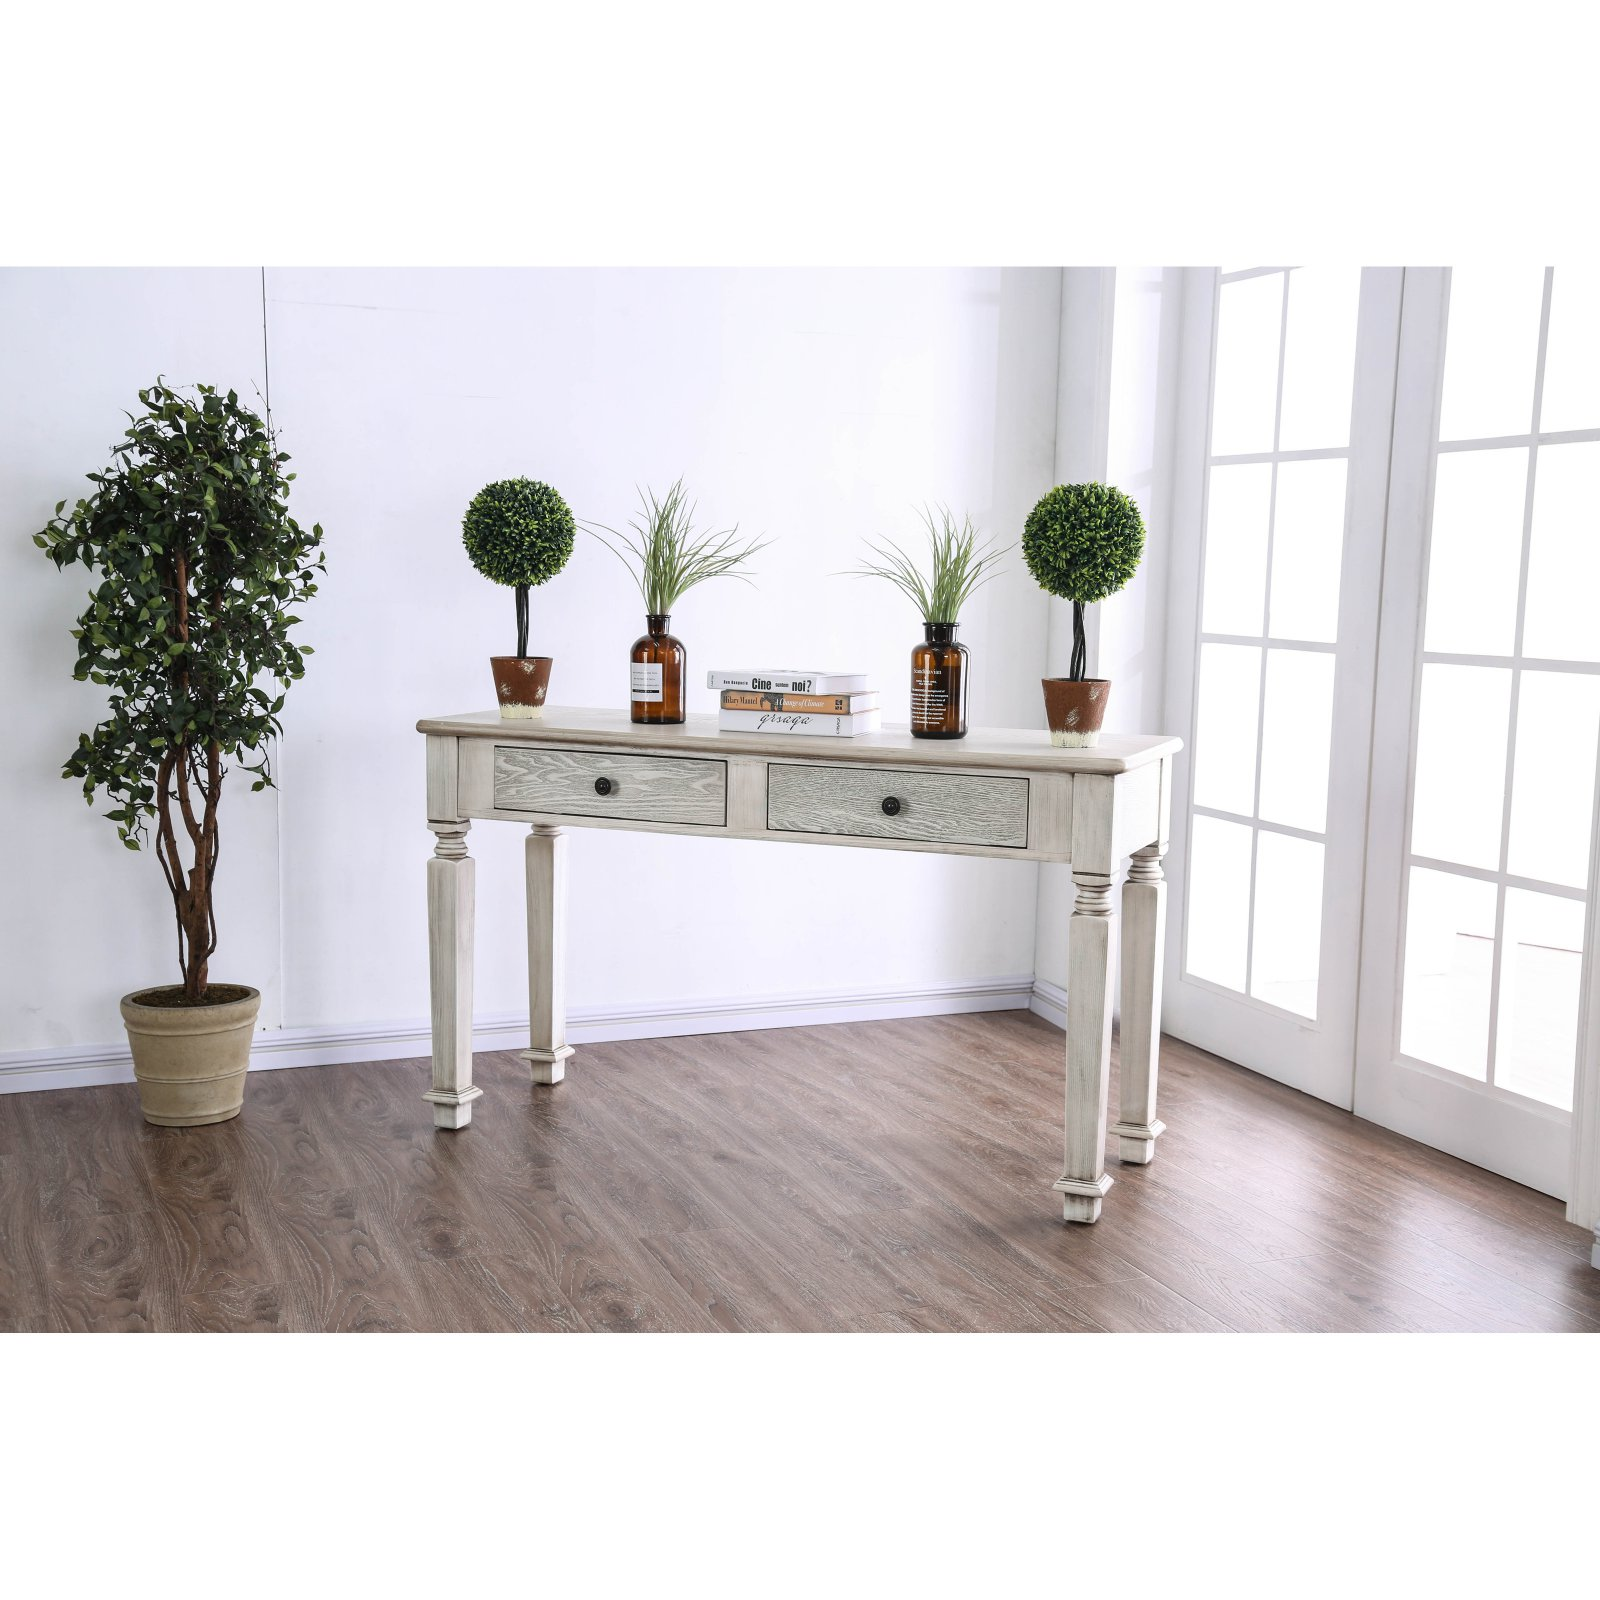 Furniture of America Jonie Rustic Console Table